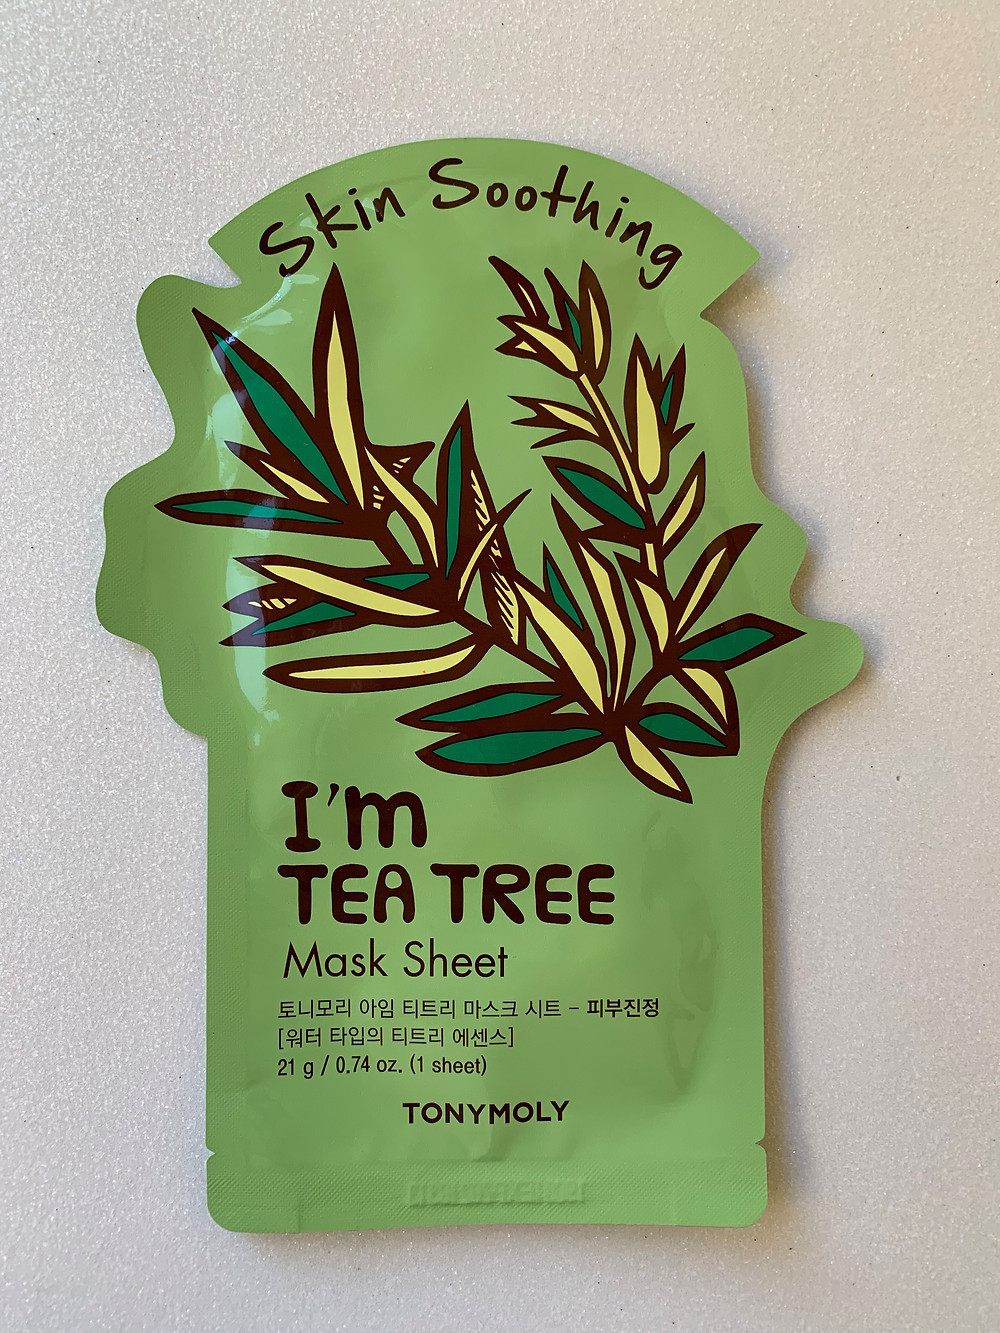 Tony Moly | I'm Real Tea Tree Skin Soothing